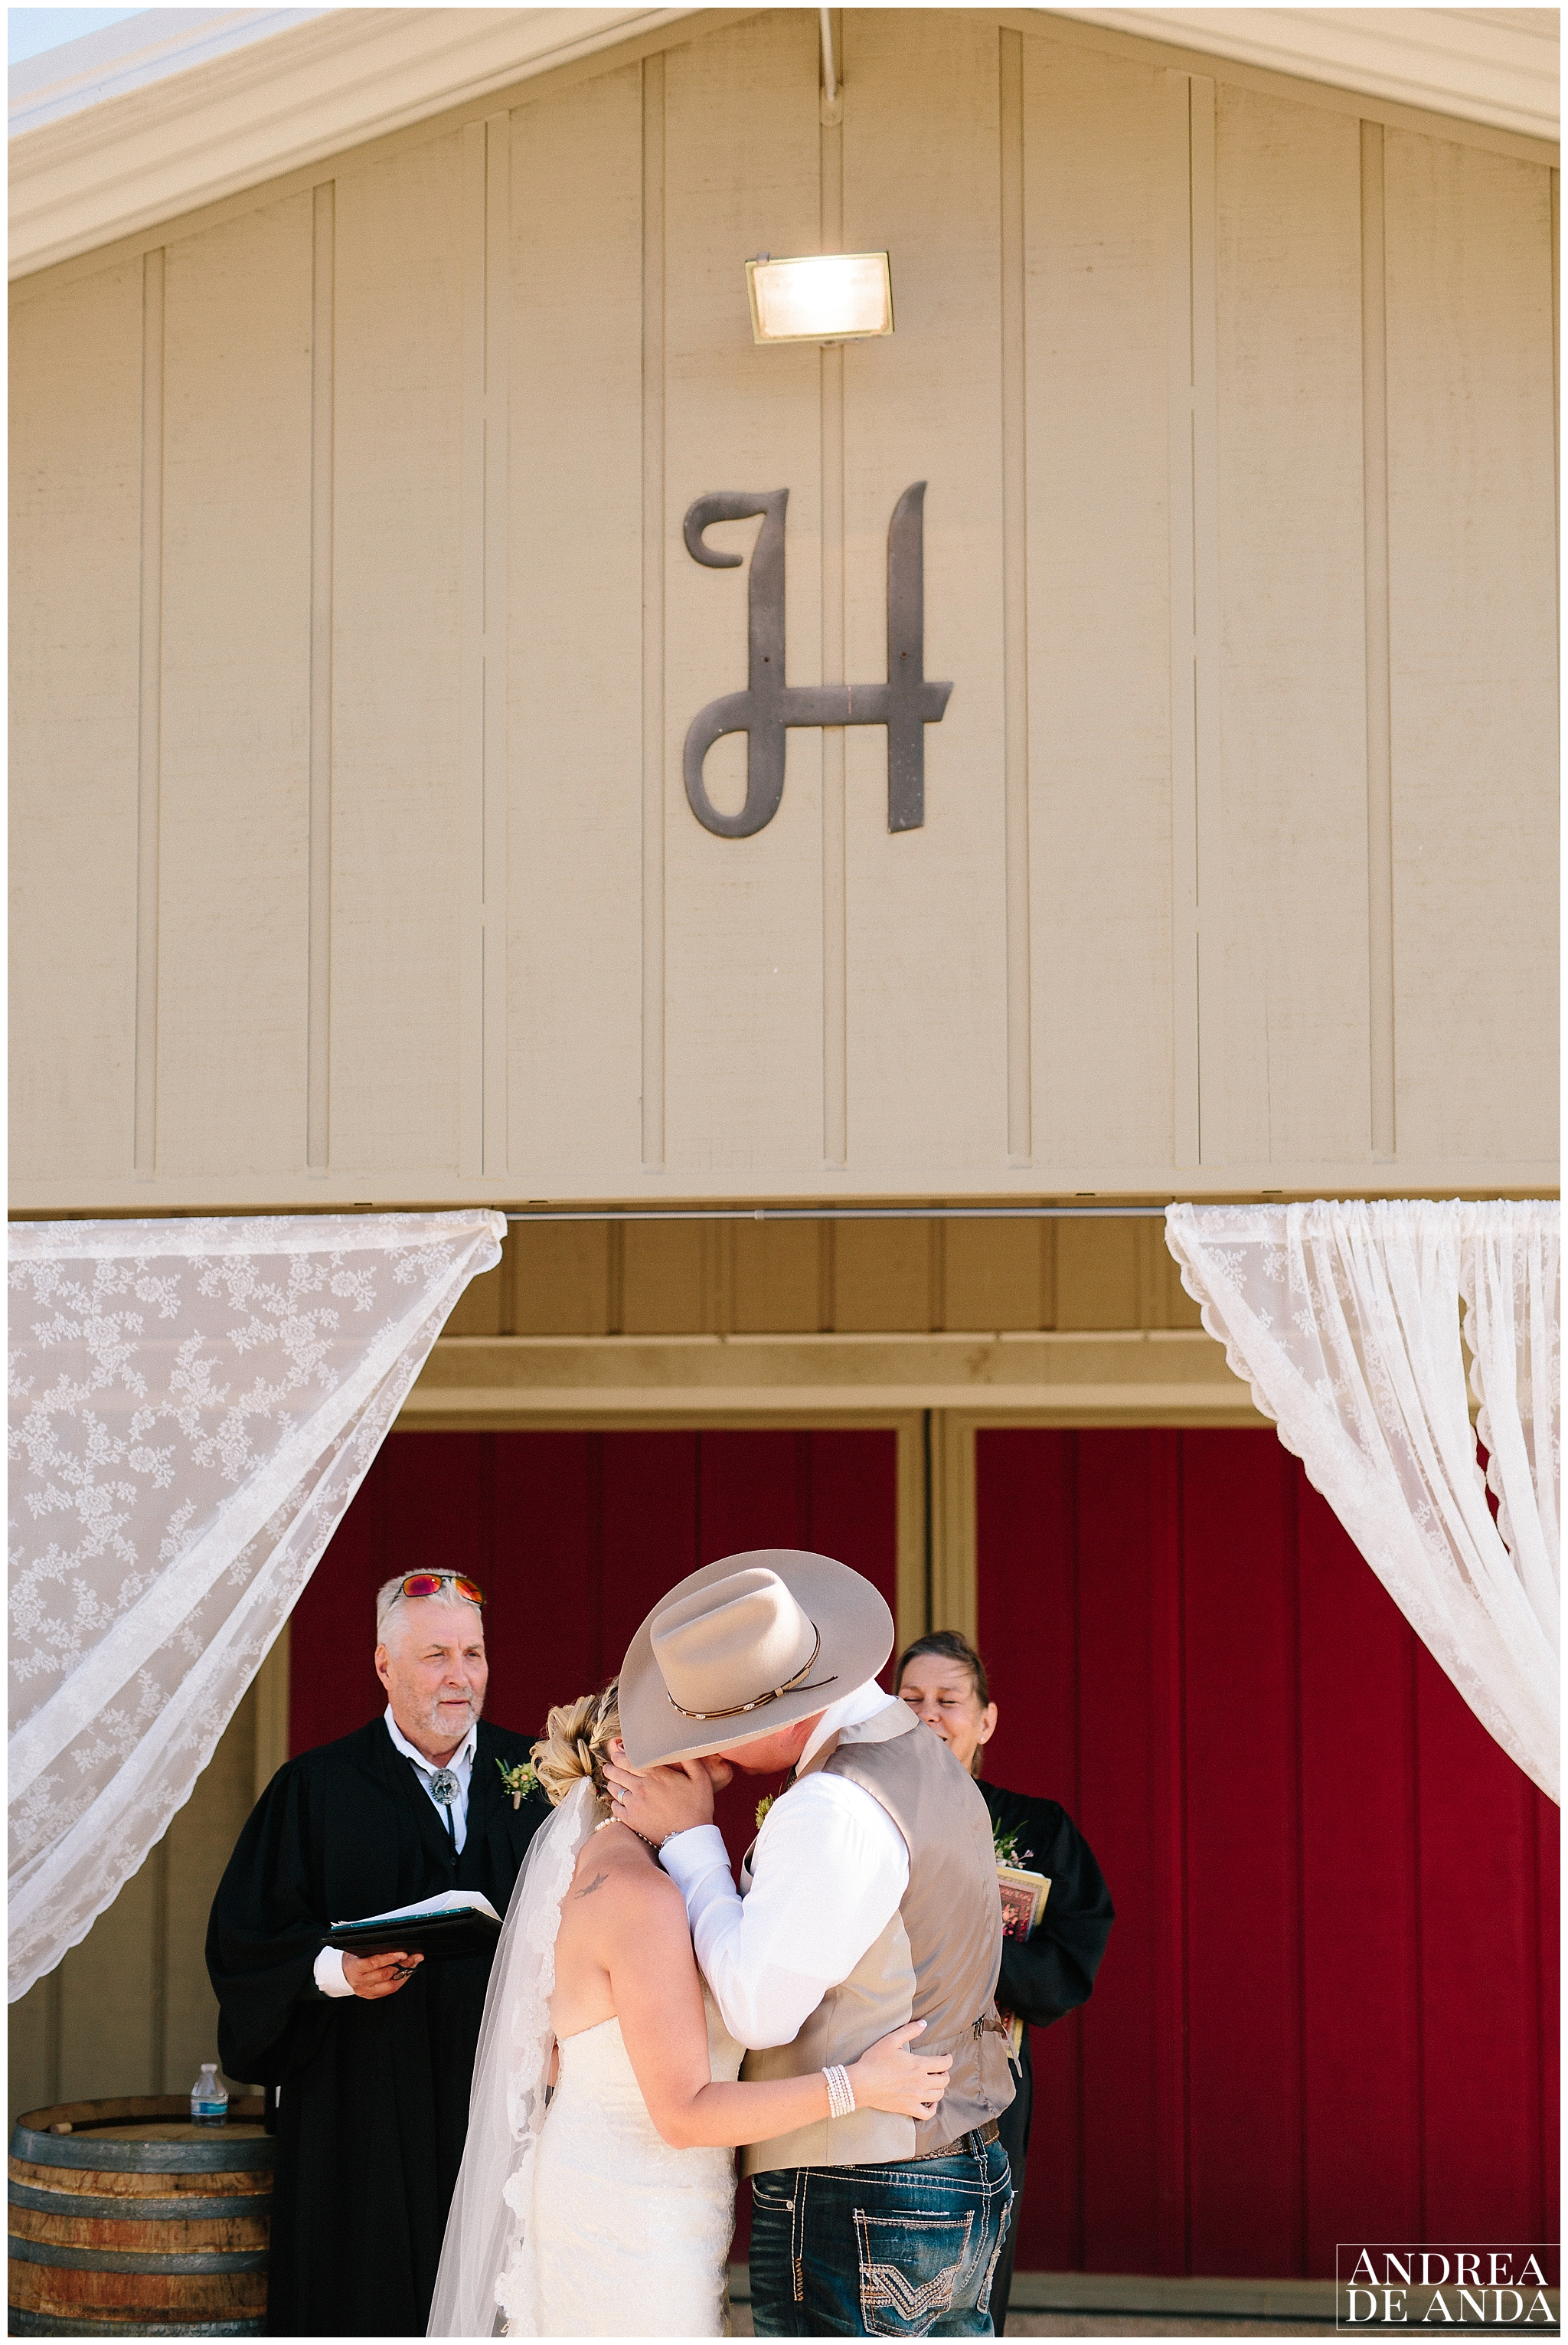 Santa Ynez Valley back yard wedding_Andrea de Anda Photography__0042.jpg